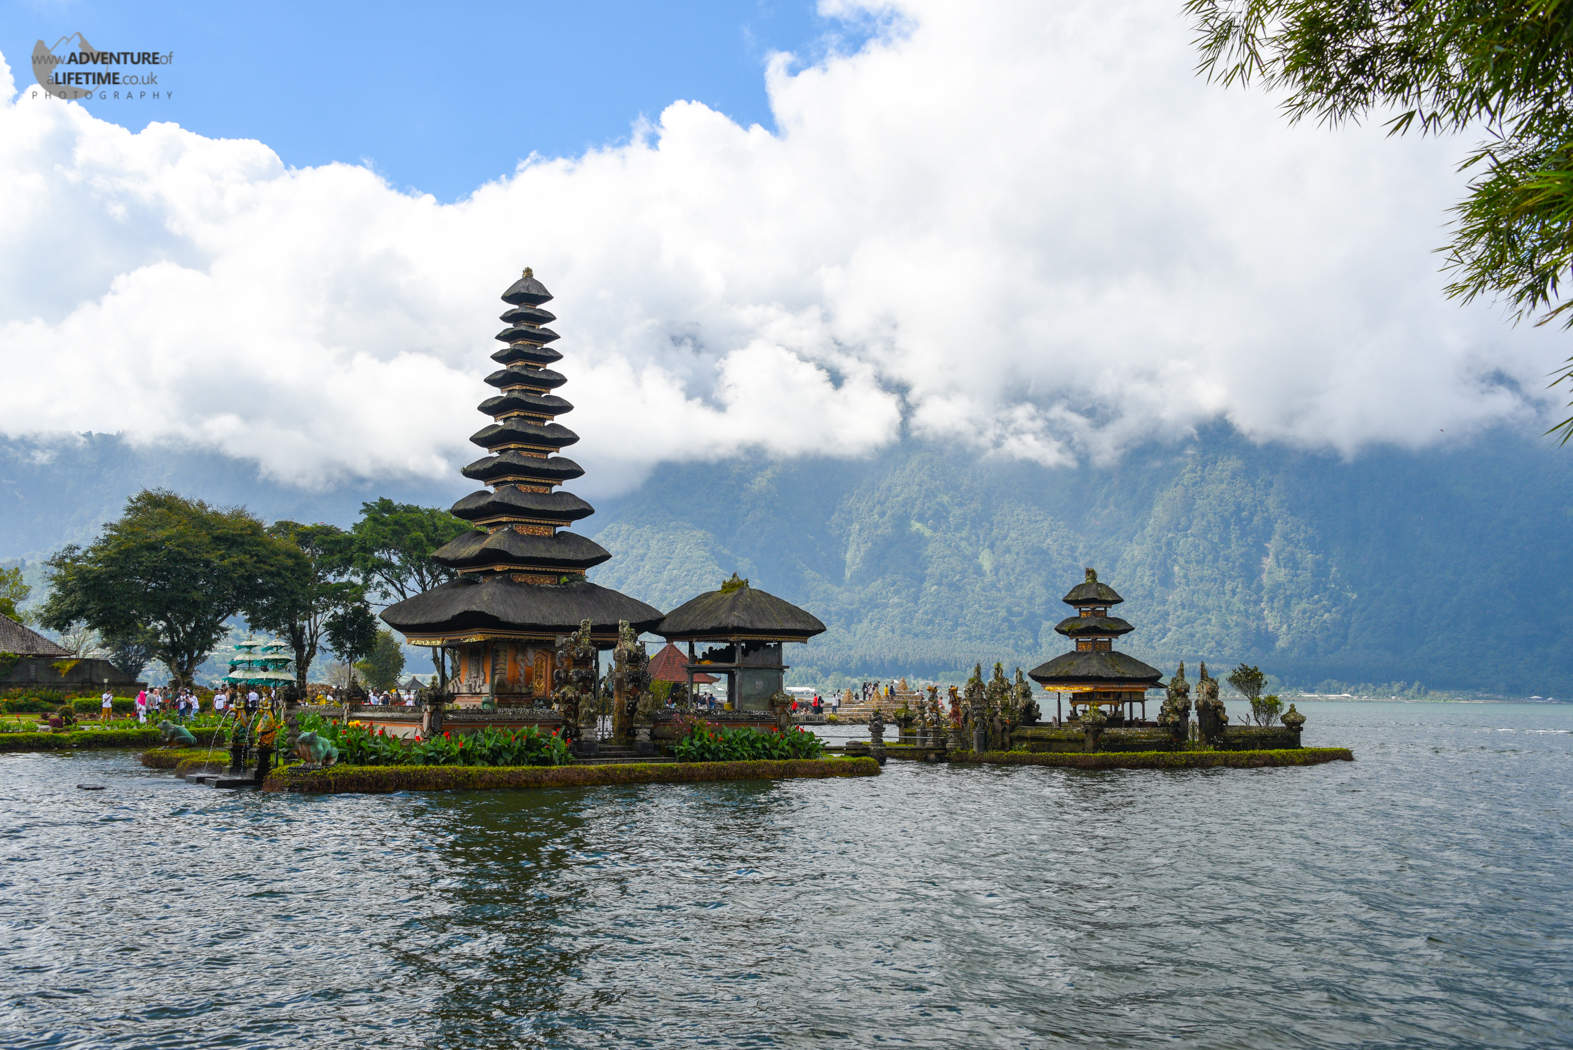 Pura Ulun Danu Temple at Lake Bratan